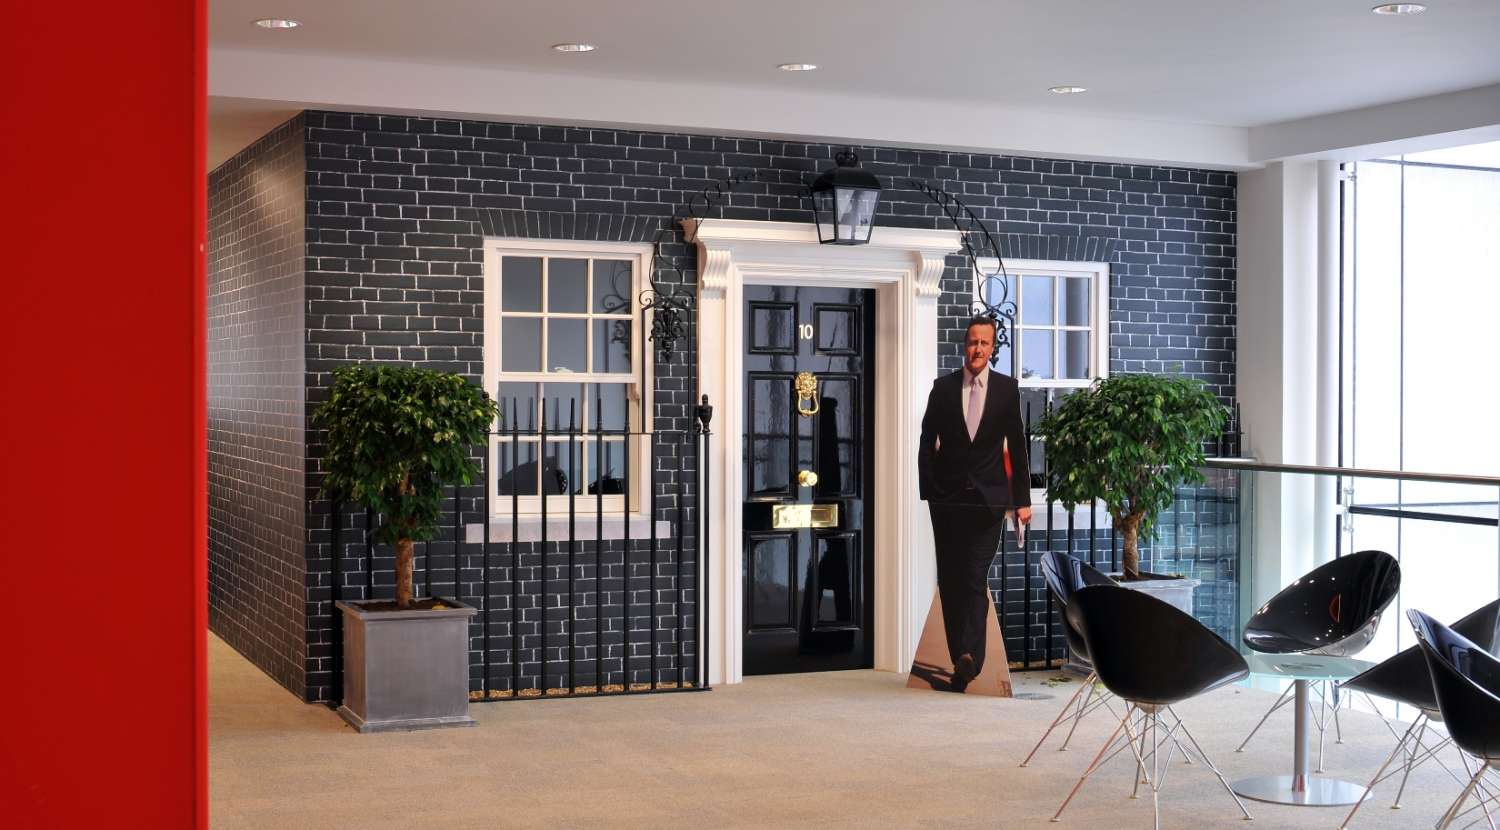 The facade of No.10 Downing Street adds patriotism to this office design